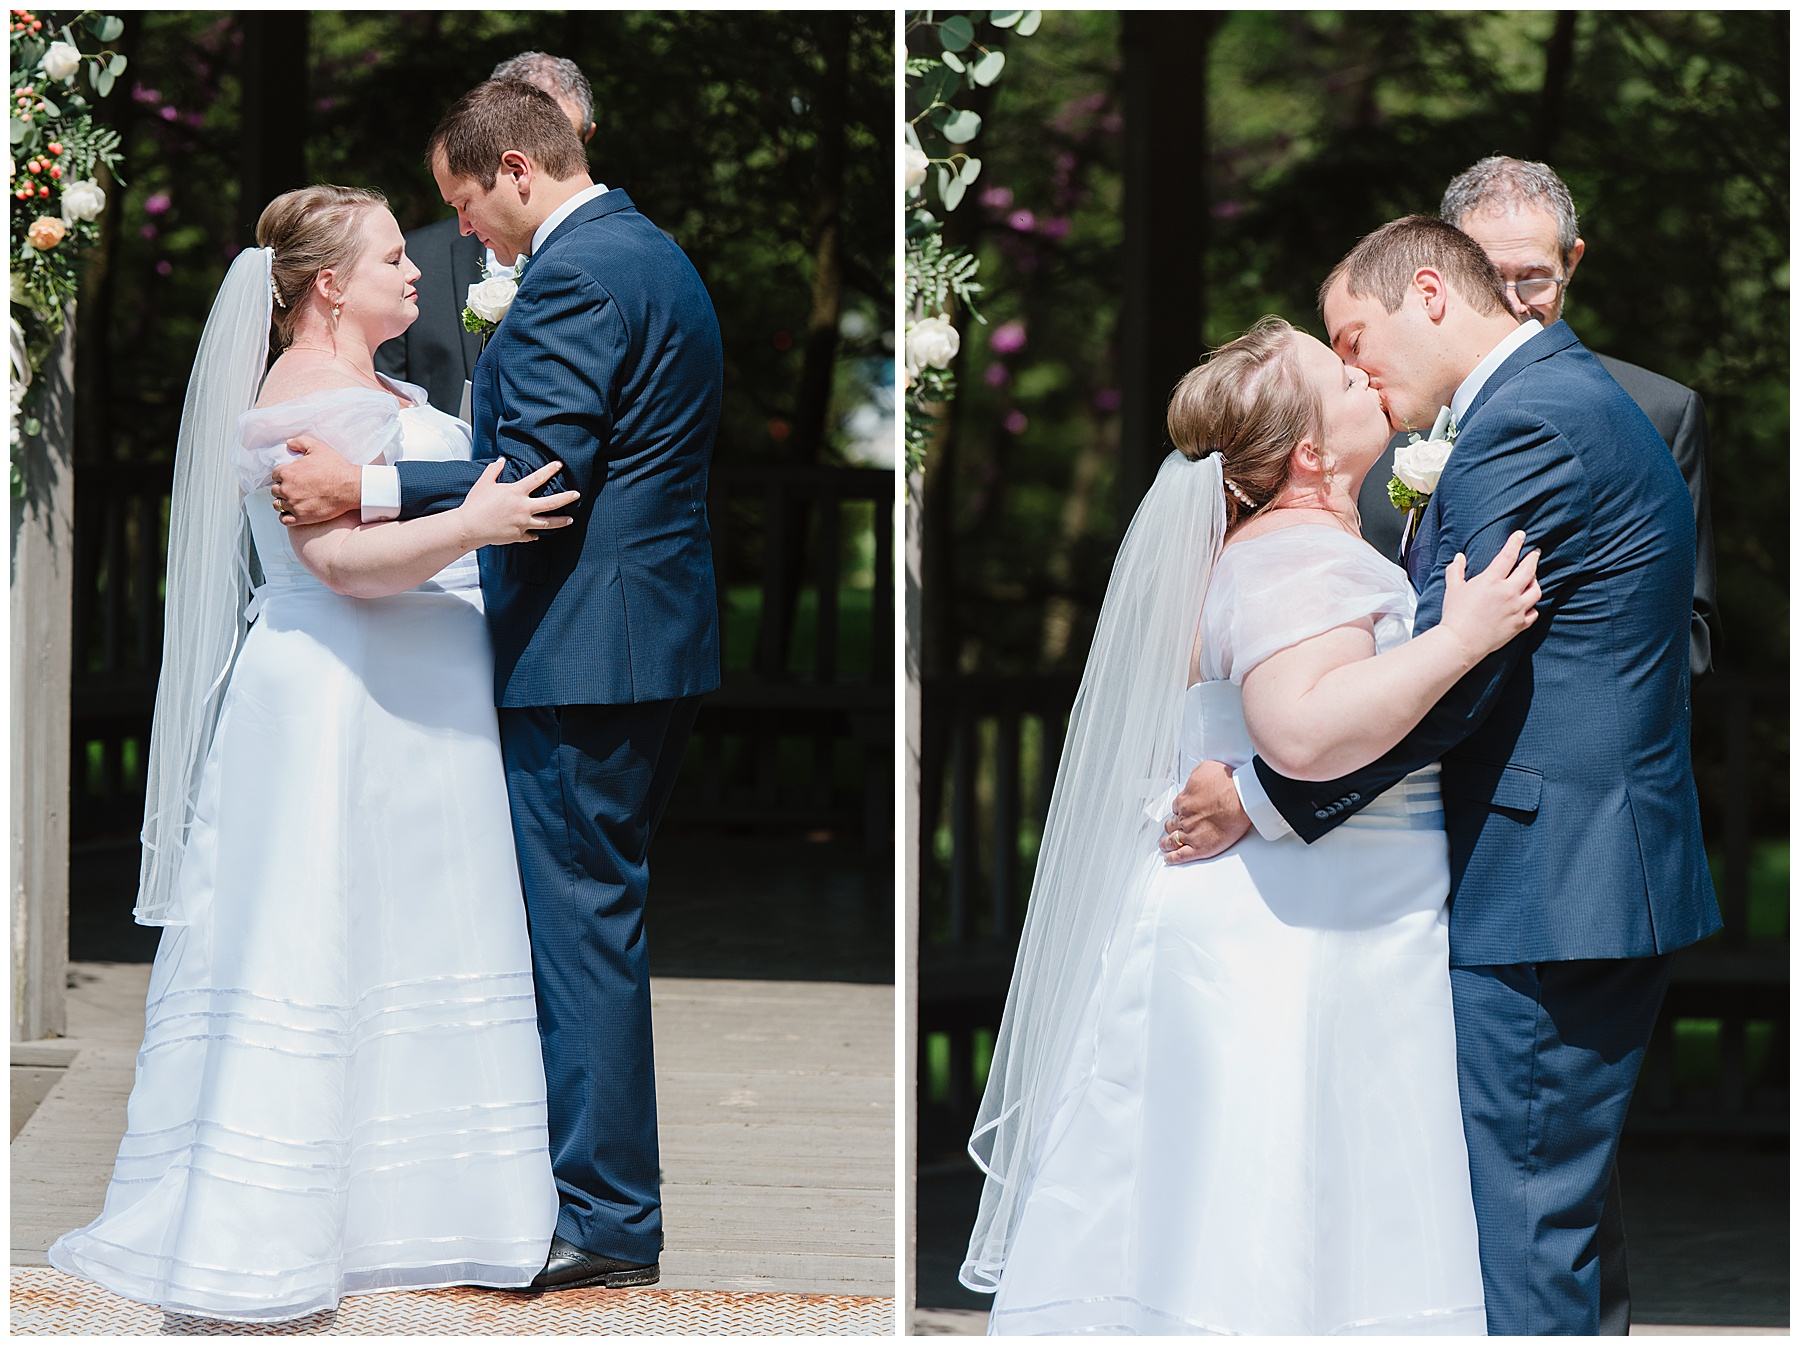 foster park fort wayne indiana wedding photographer_0217